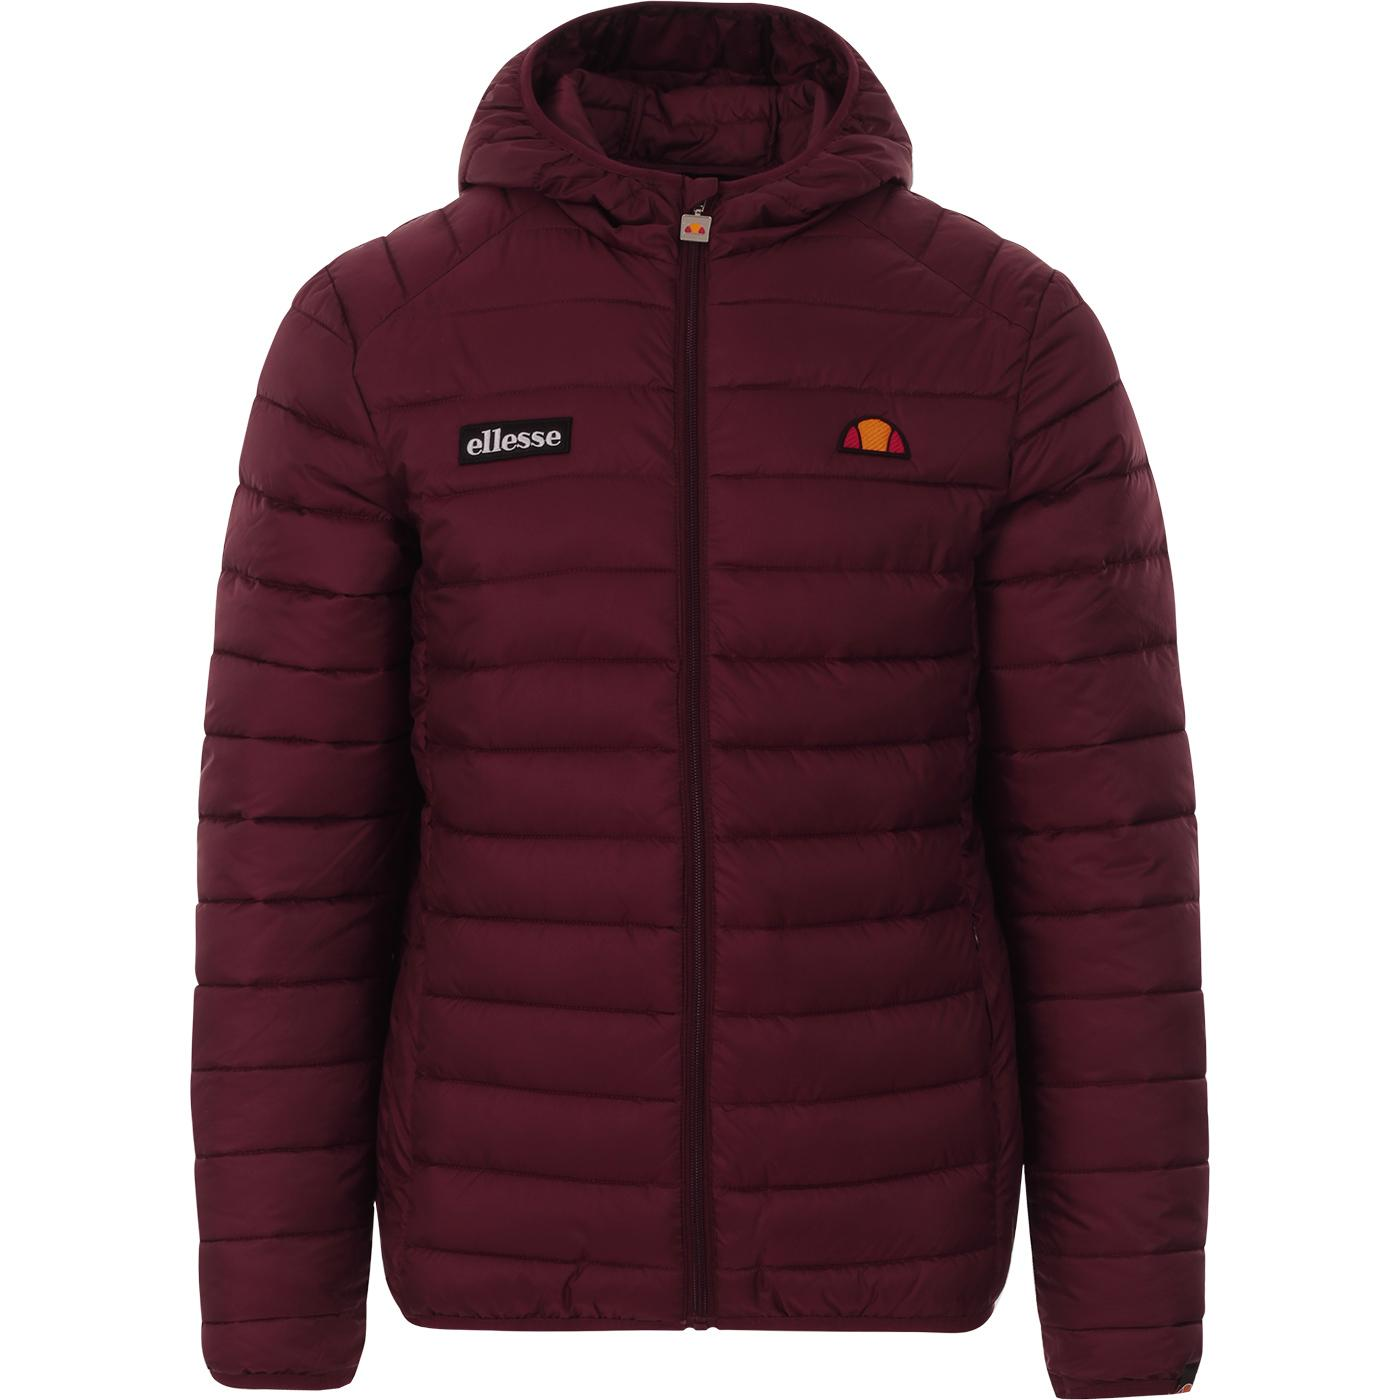 Lombardy ELLESSE Retro Quilted Ski Jacket BURGUNDY